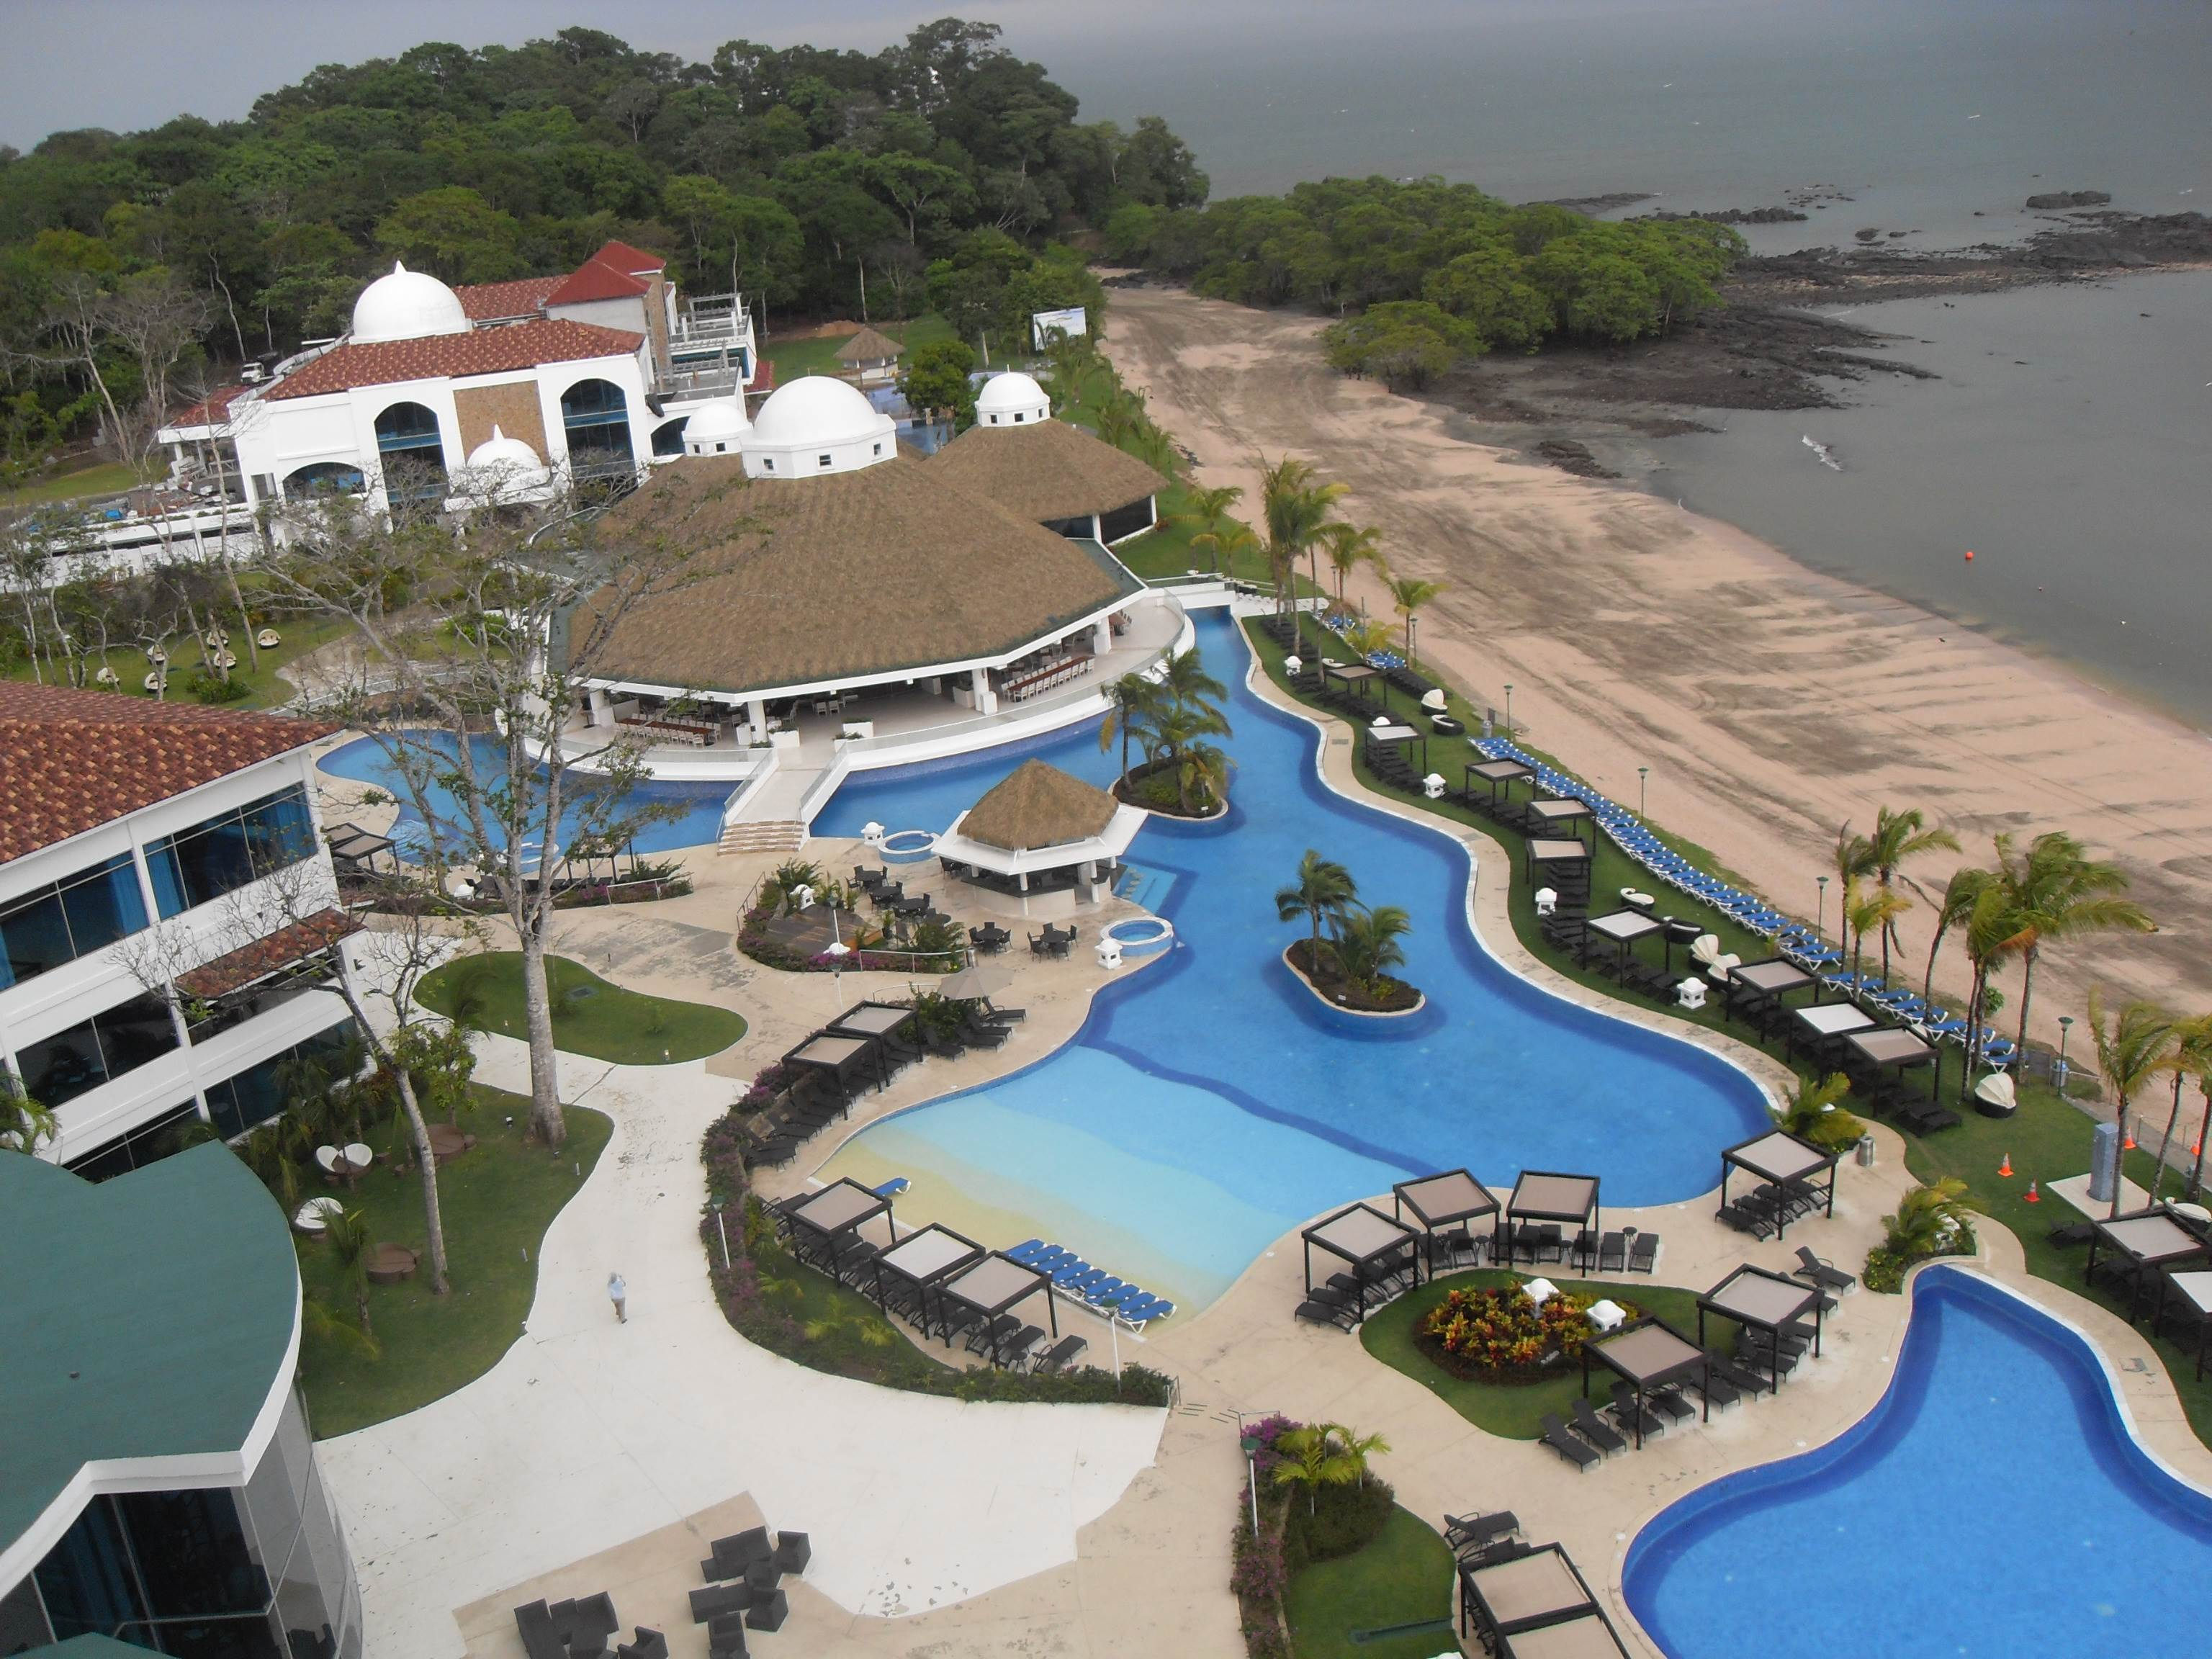 From the balcony of the Westin Playa Bonita Hotel in Veracruz, Panama